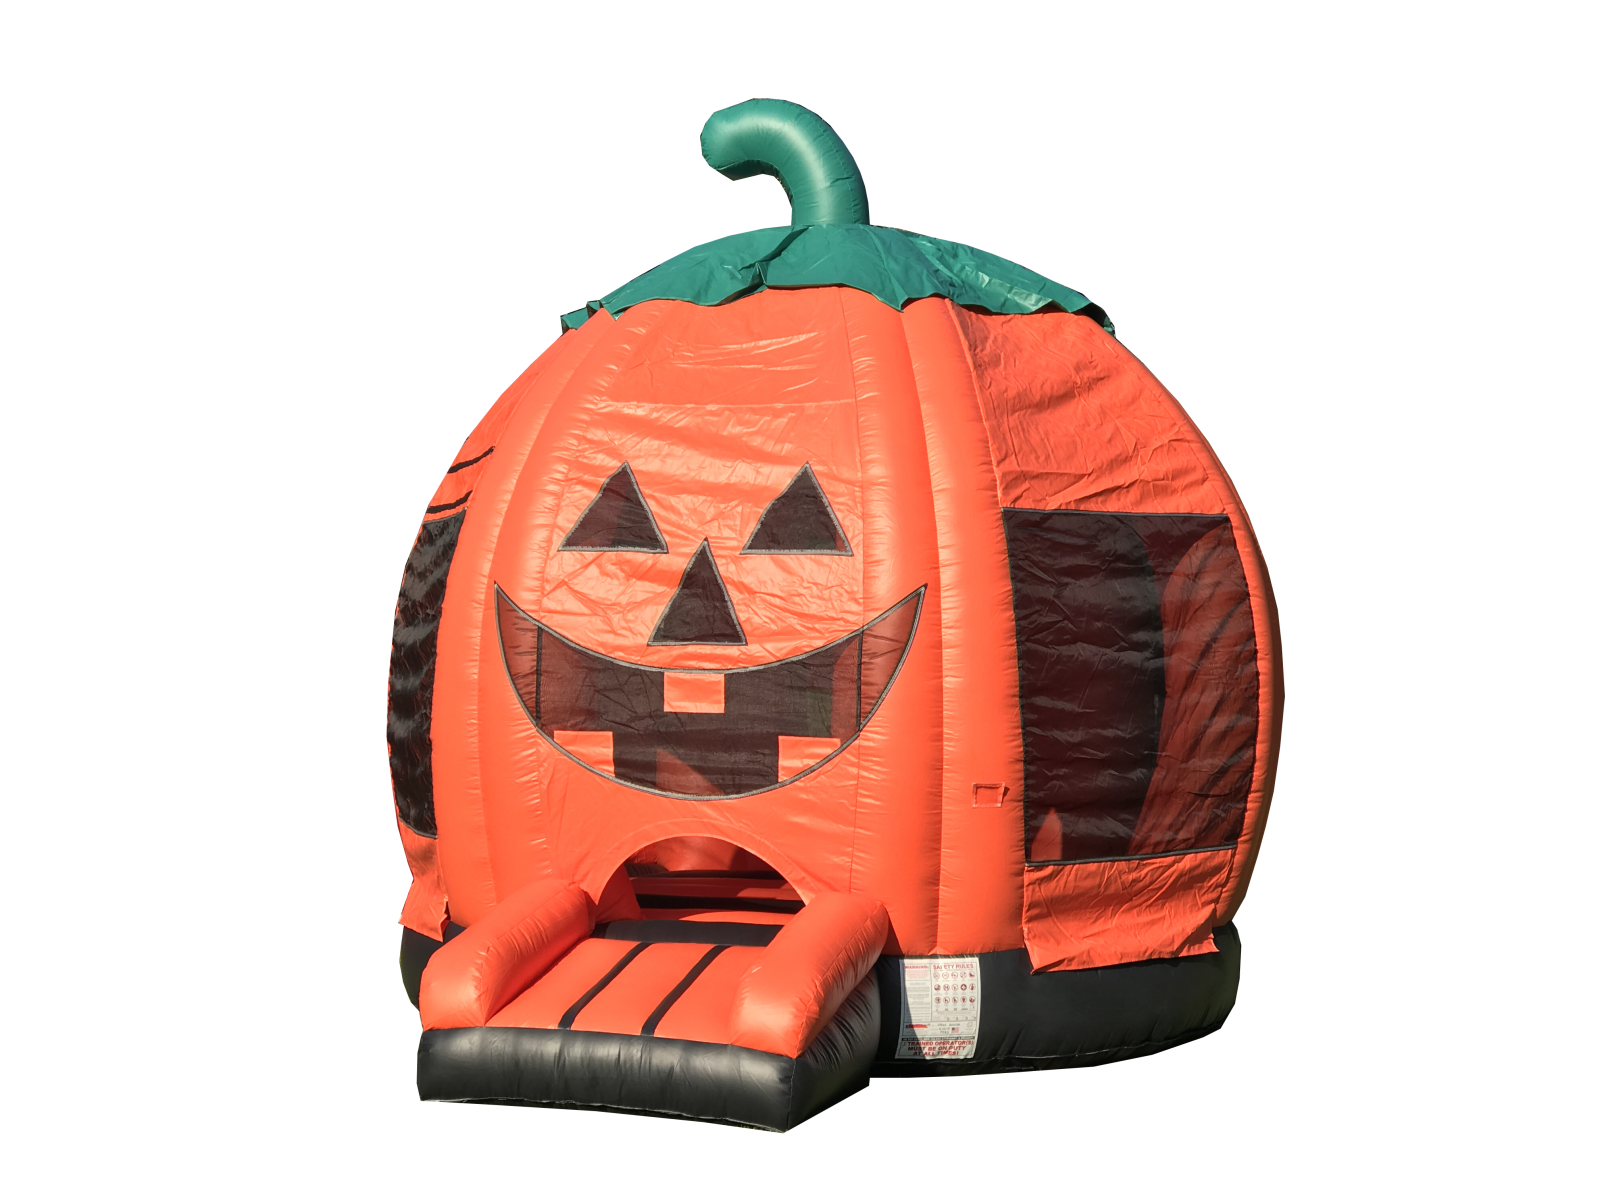 Halloween Bounce House Pumpkin bouncy house Jack-o-lantern Bouncer for rent Nashville Tn Jumping Hearts Party Rentals